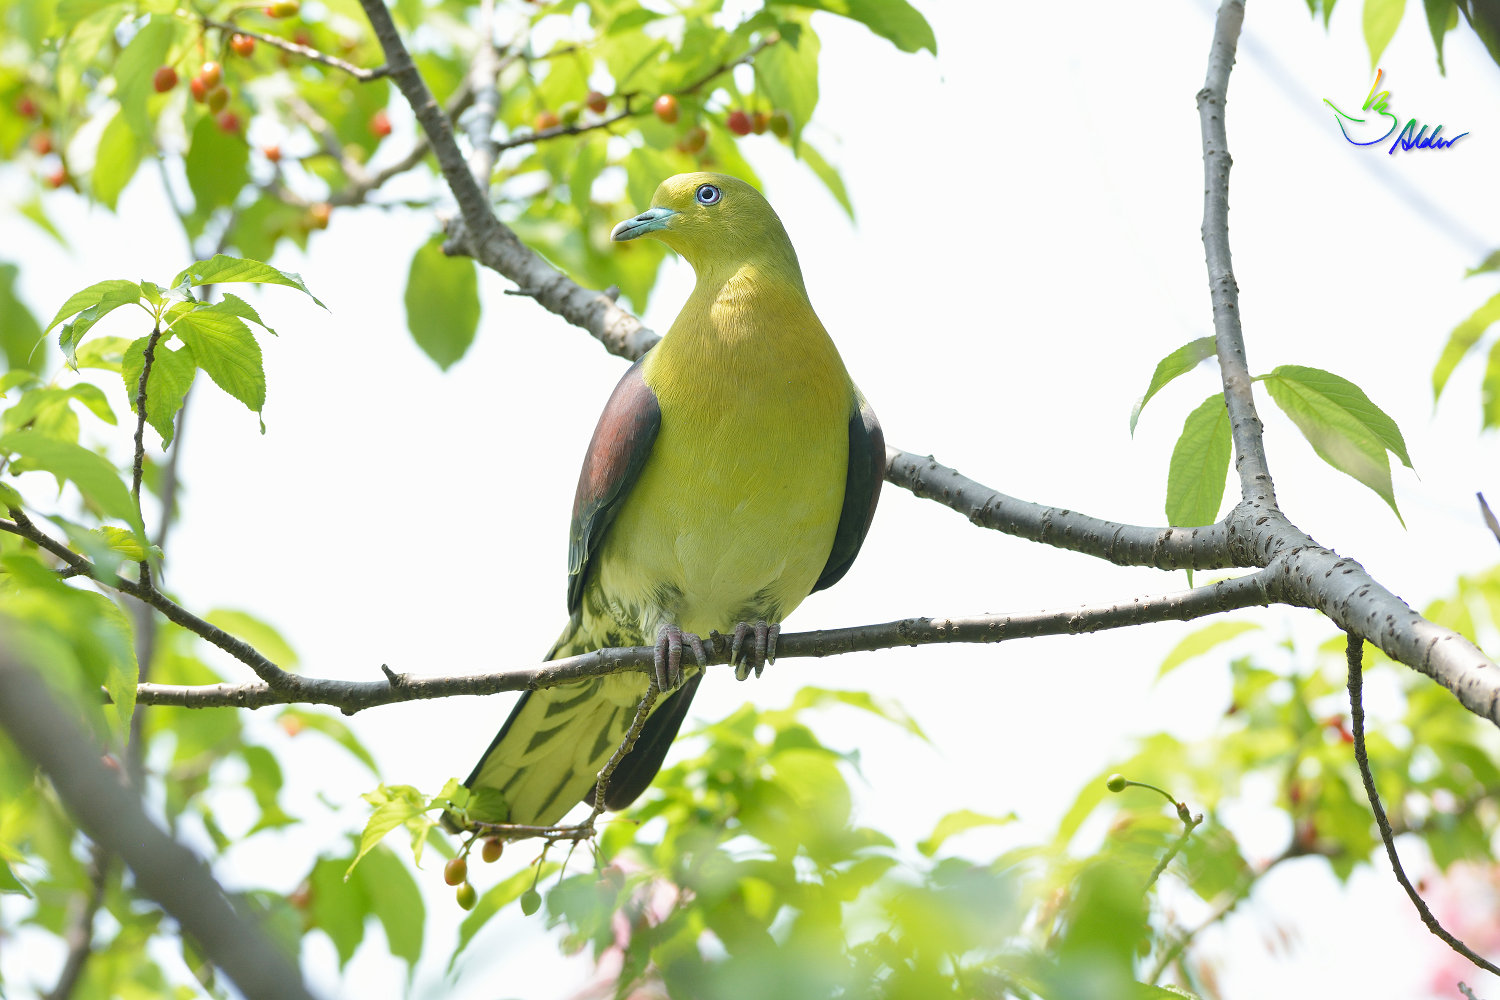 White-bellied_Green_Pigeon_5334